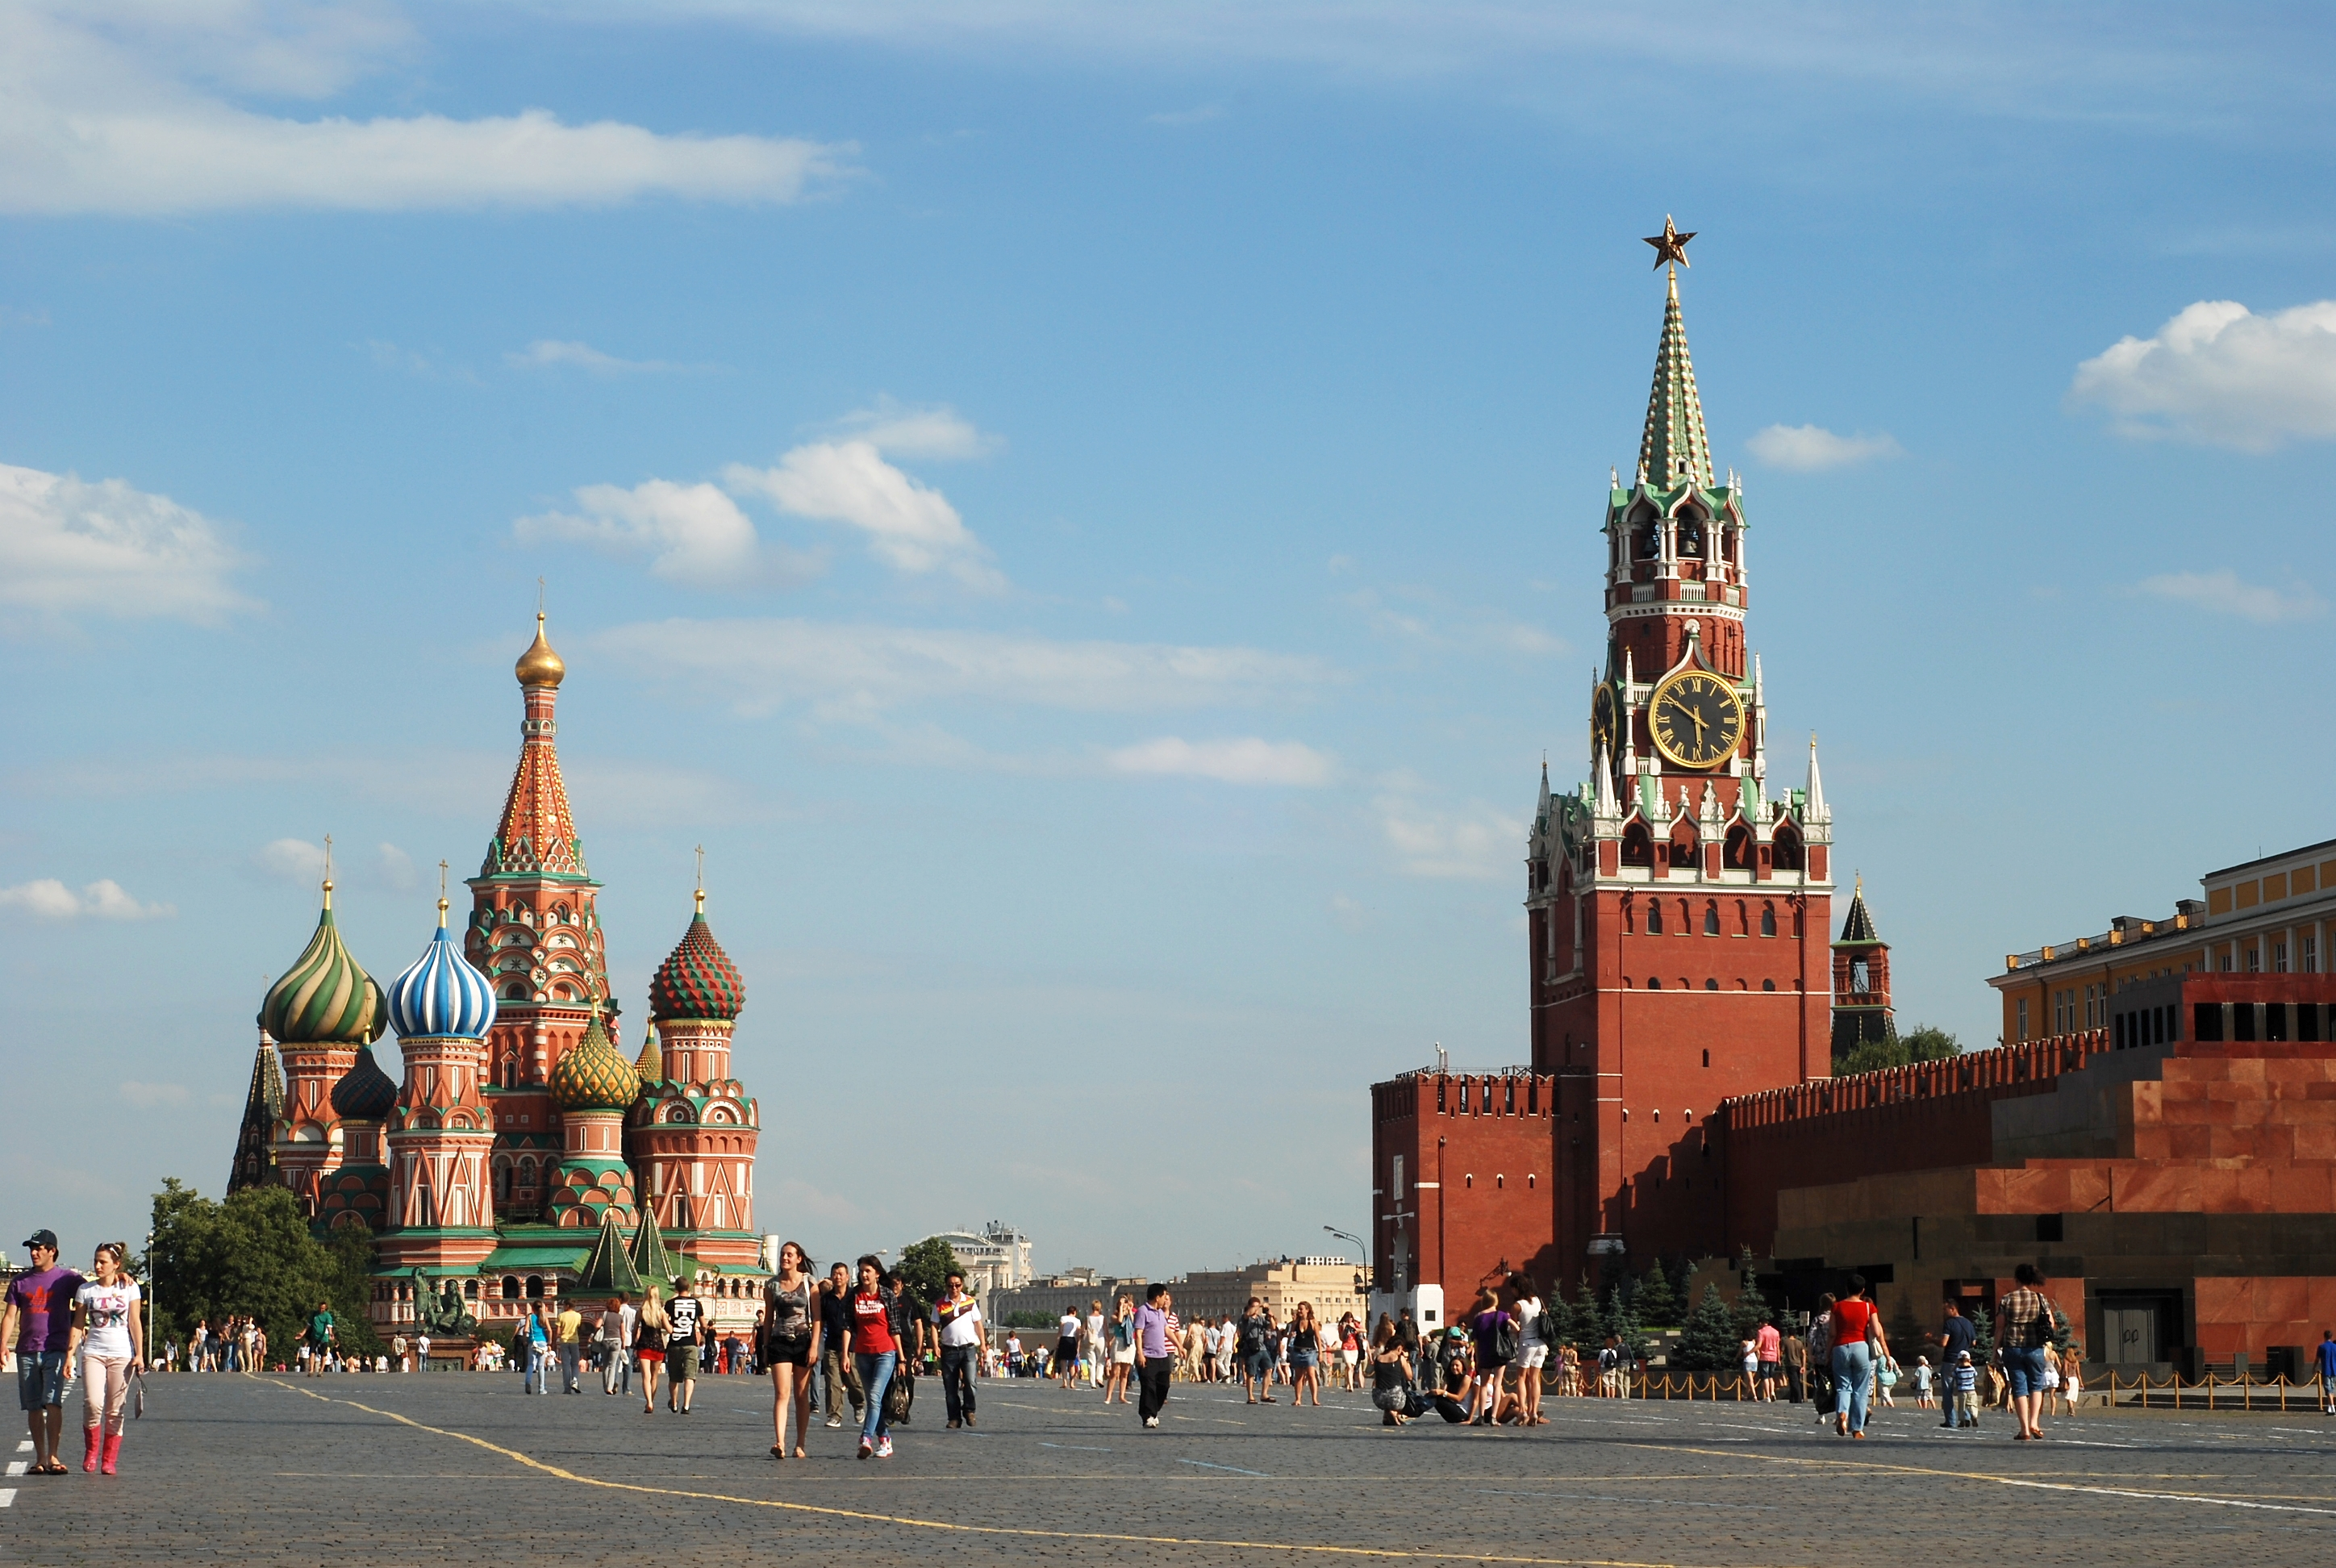 Moscow - One Of The Top Places To Travel To In 2018